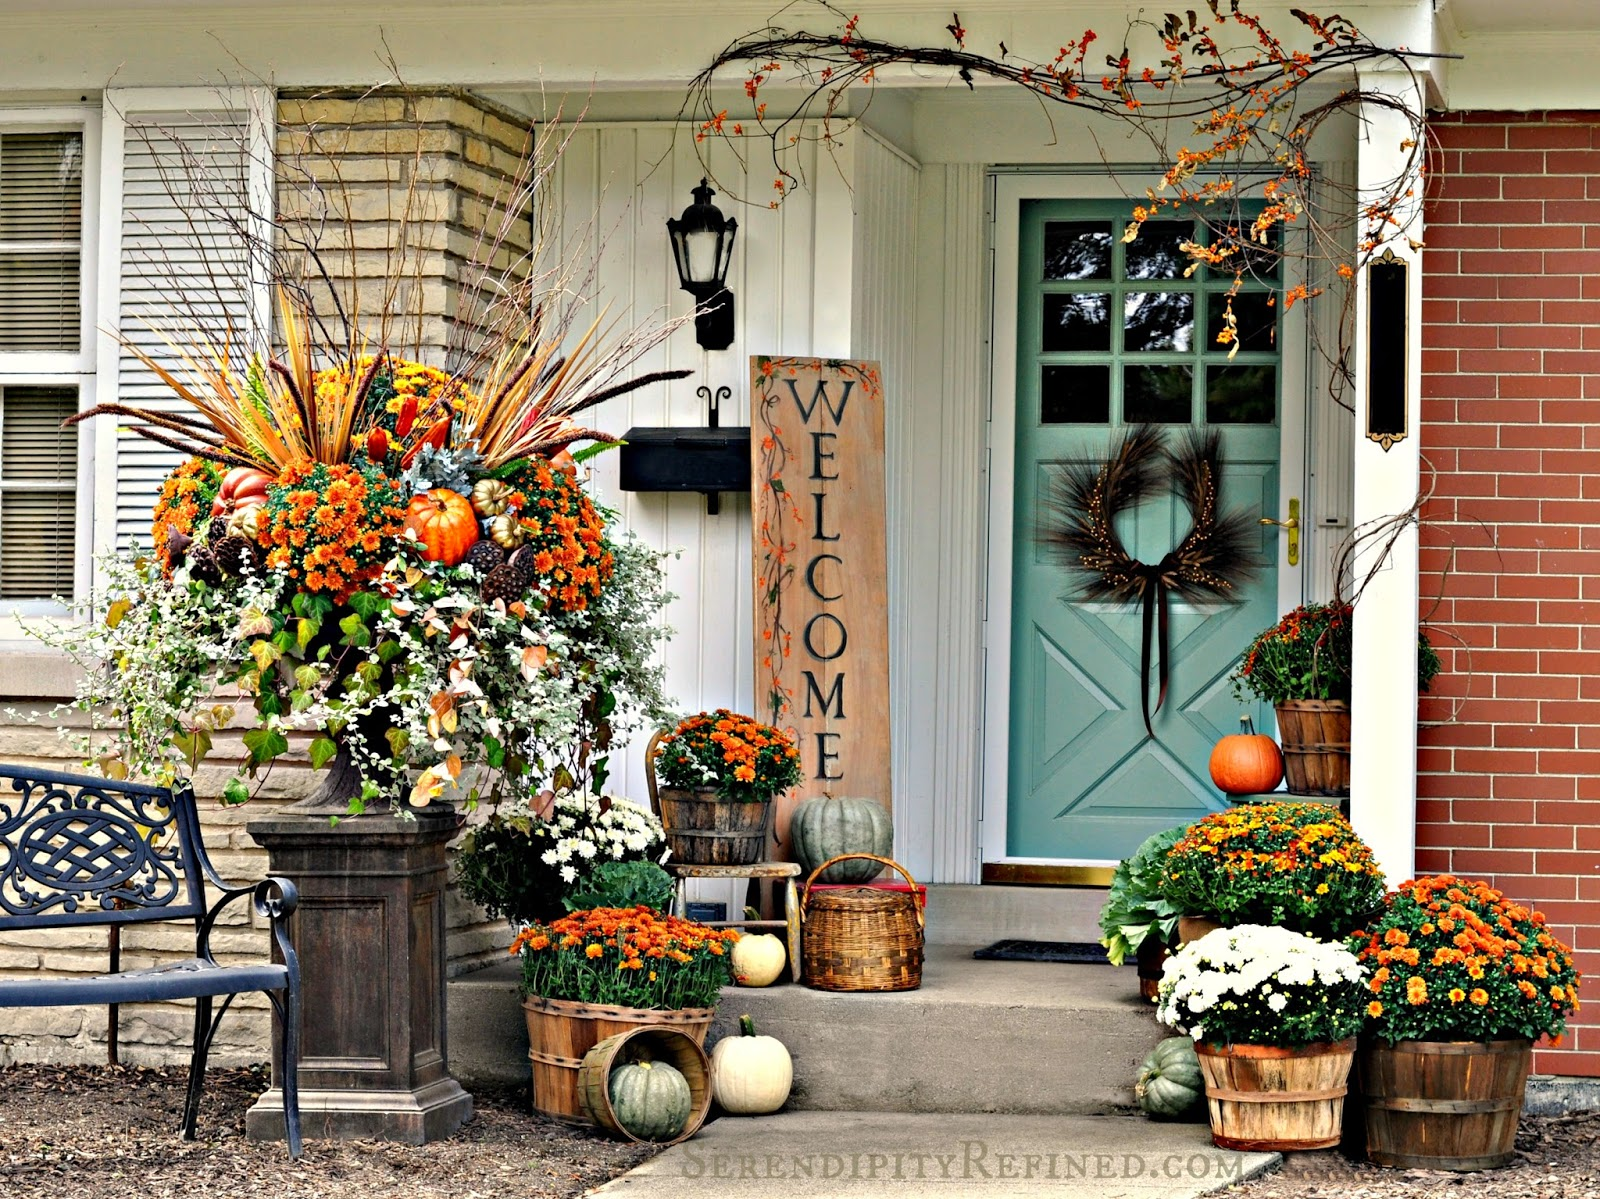 Fabulous Outdoor Decorating Tips And Ideas For Fall